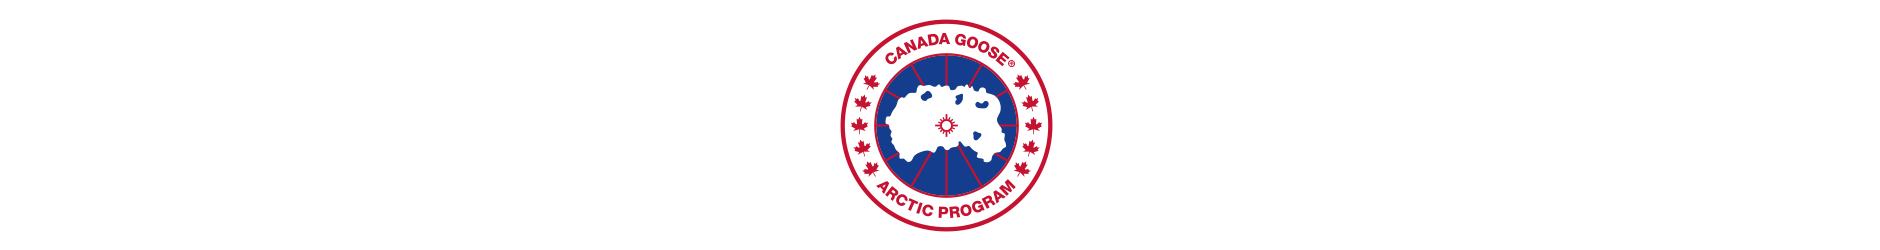 canada goose logo right or left arm